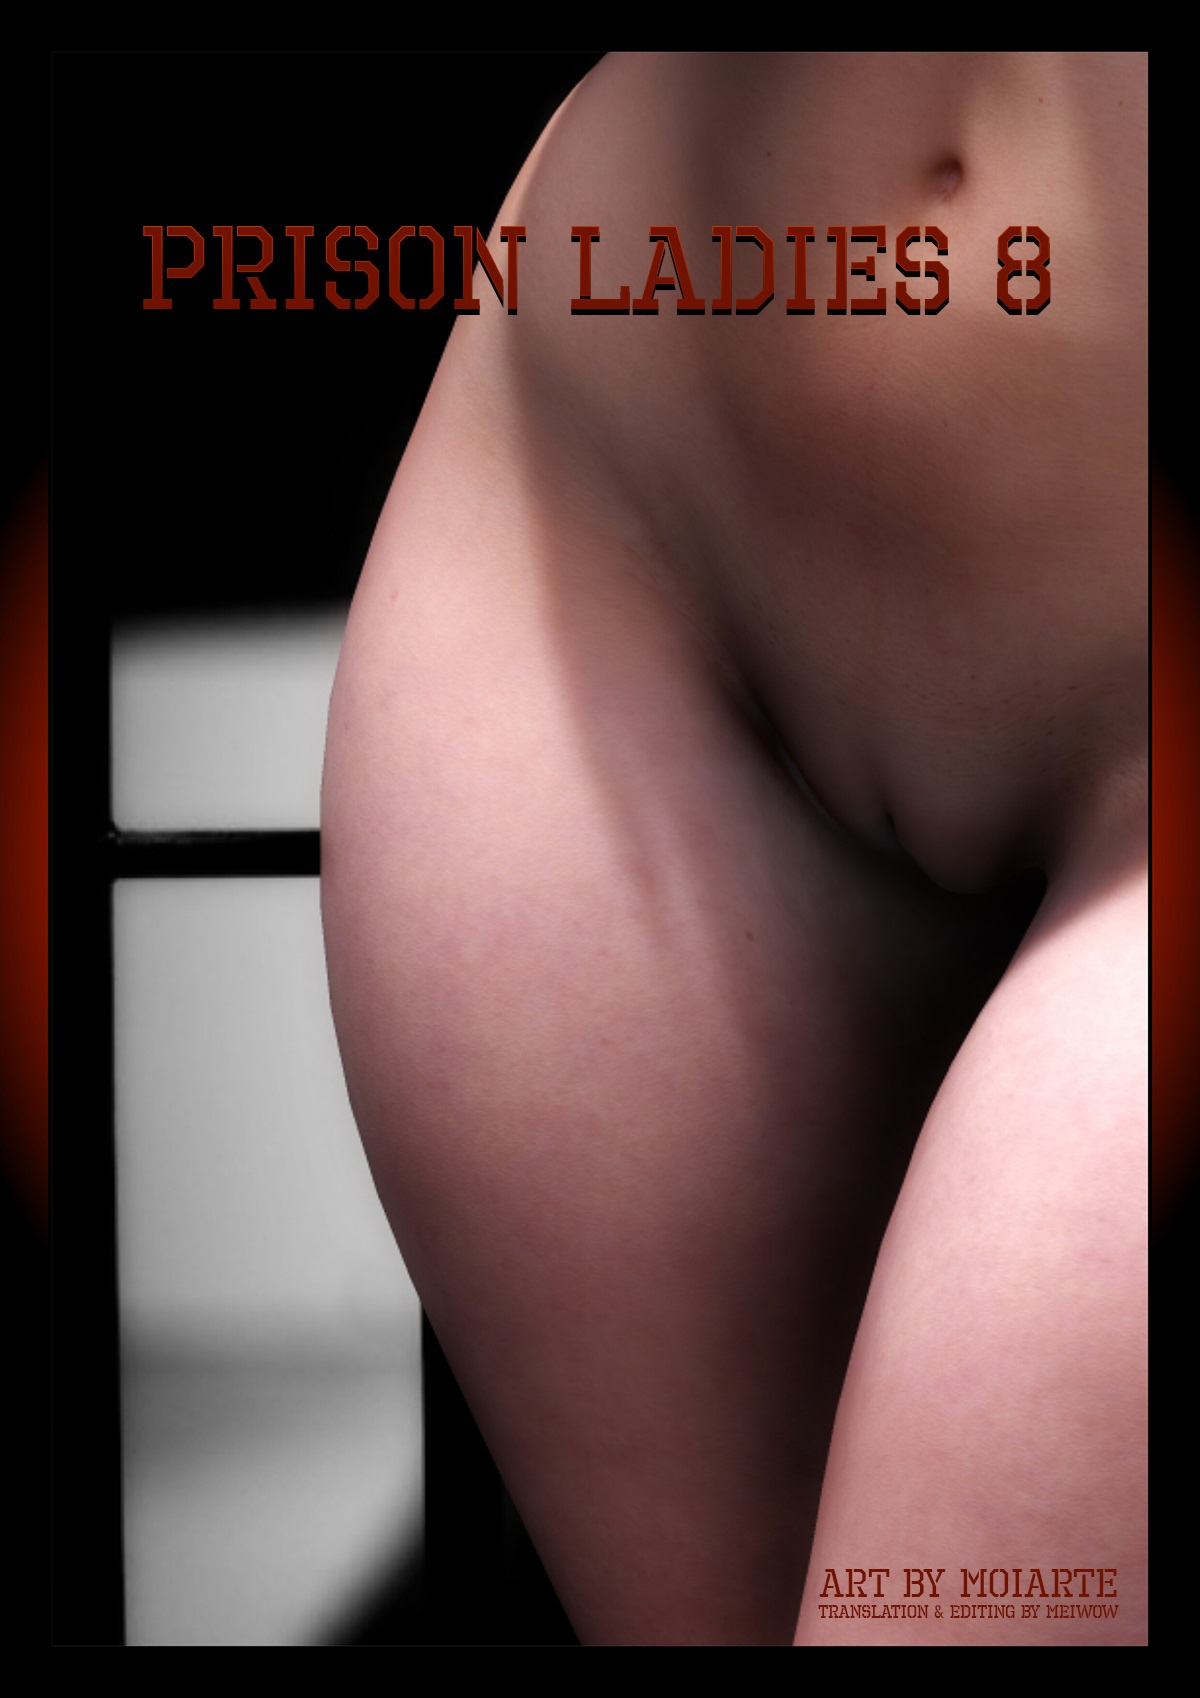 Prison Ladies 8 by Moiarte porn comics 8 muses